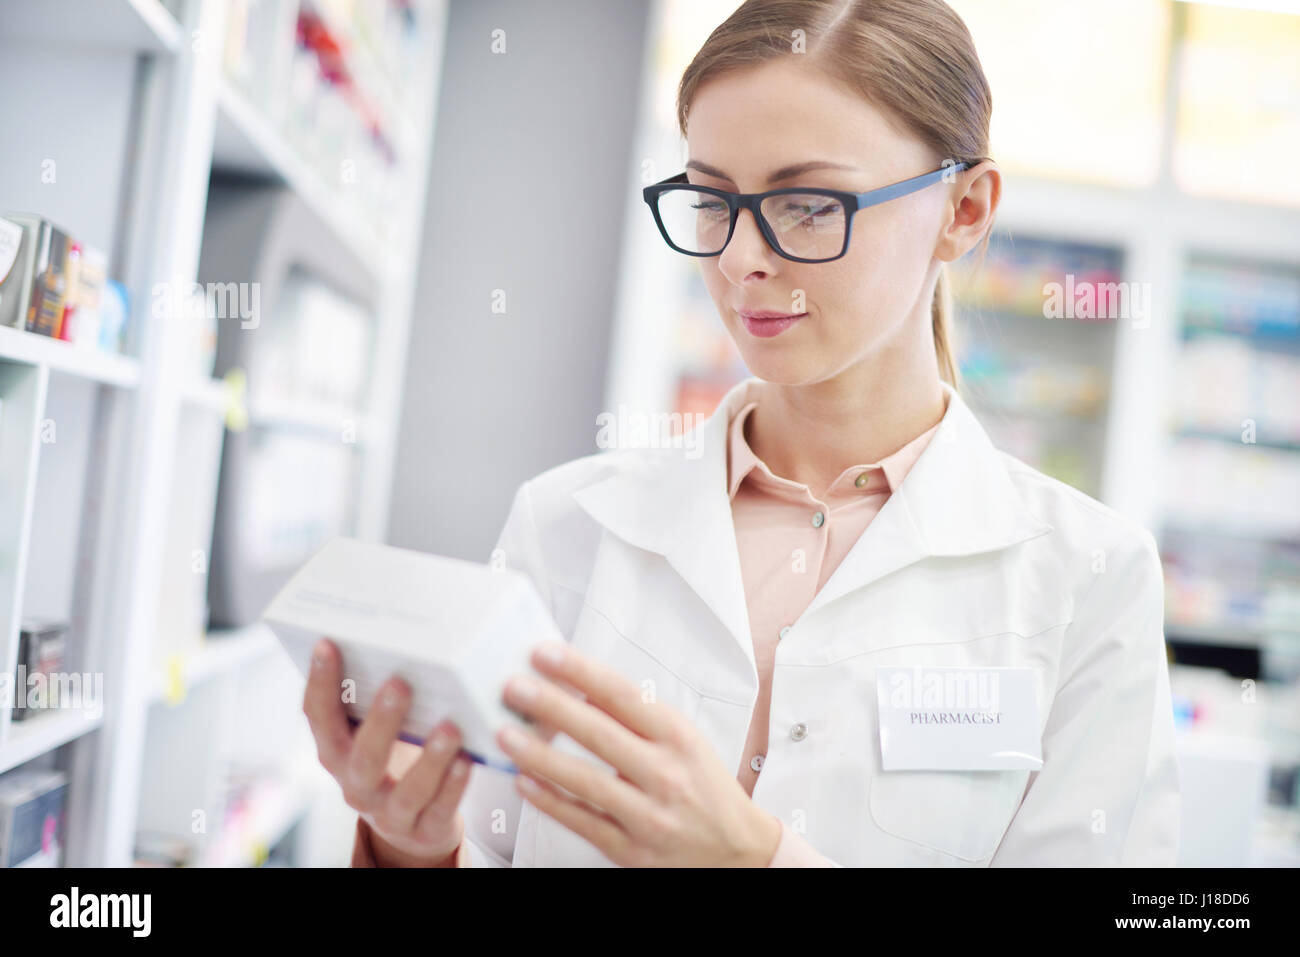 Female sales clerk studying composition of medicines - Stock Image